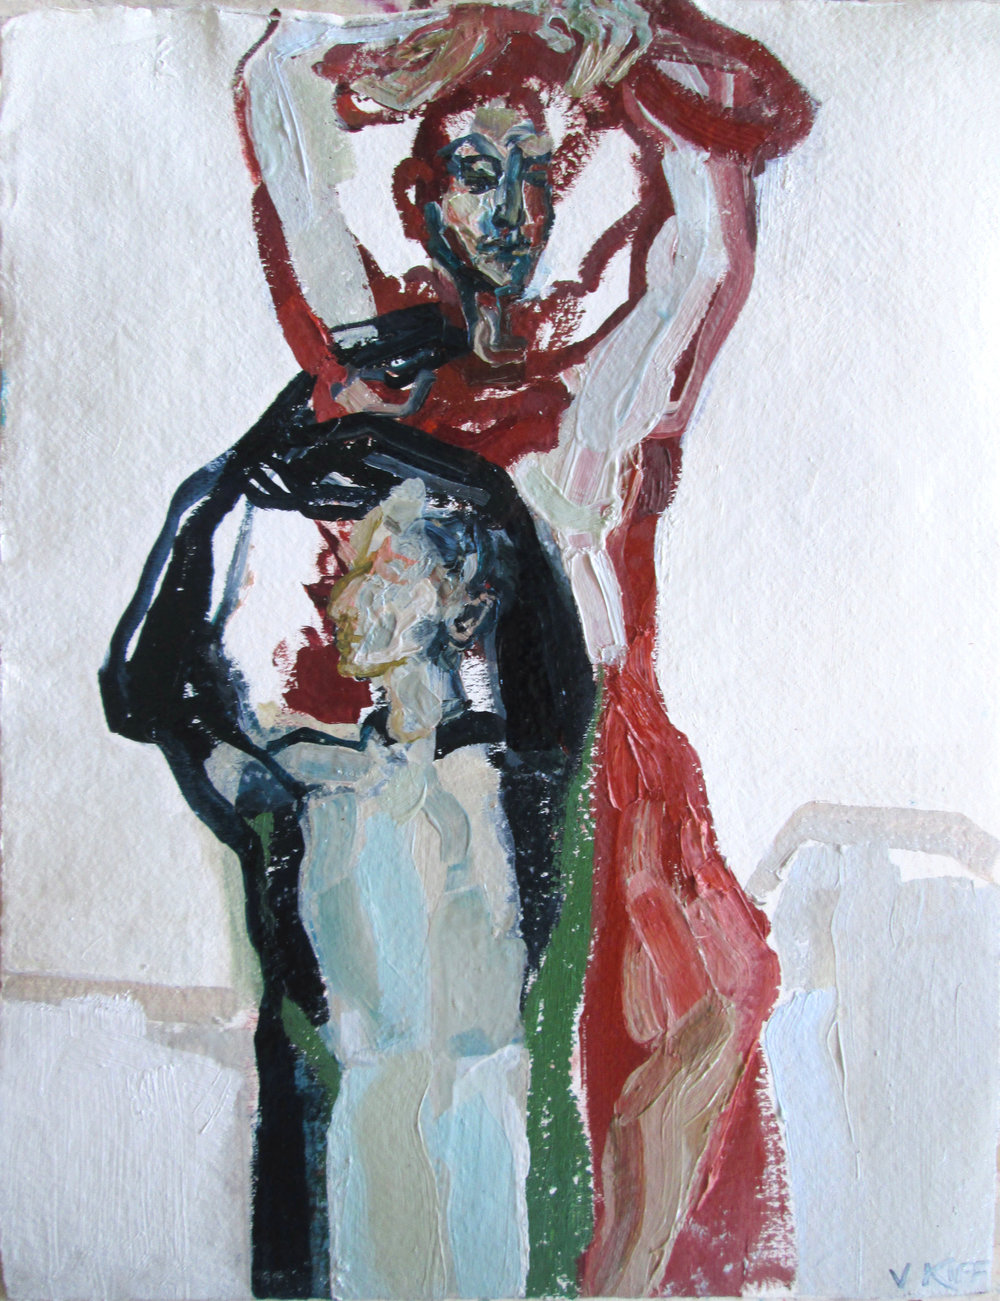 Title: Angled Stems  Size: 47 x 39 cm  Medium: Oil on paper  SOLD